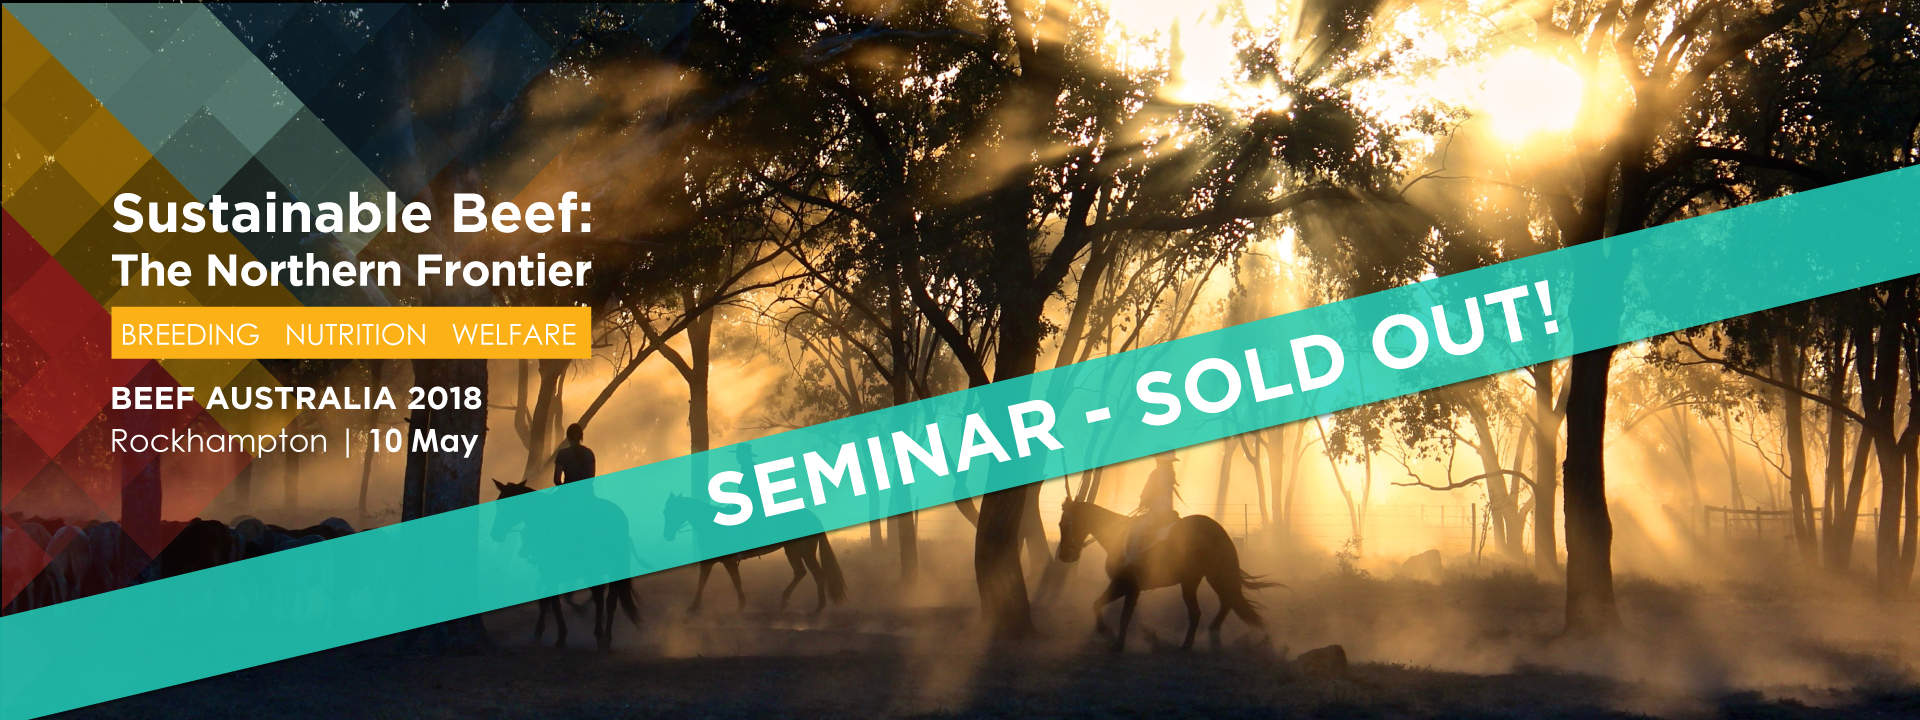 Beef Australia 2018 Queensland Alliance For Agriculture